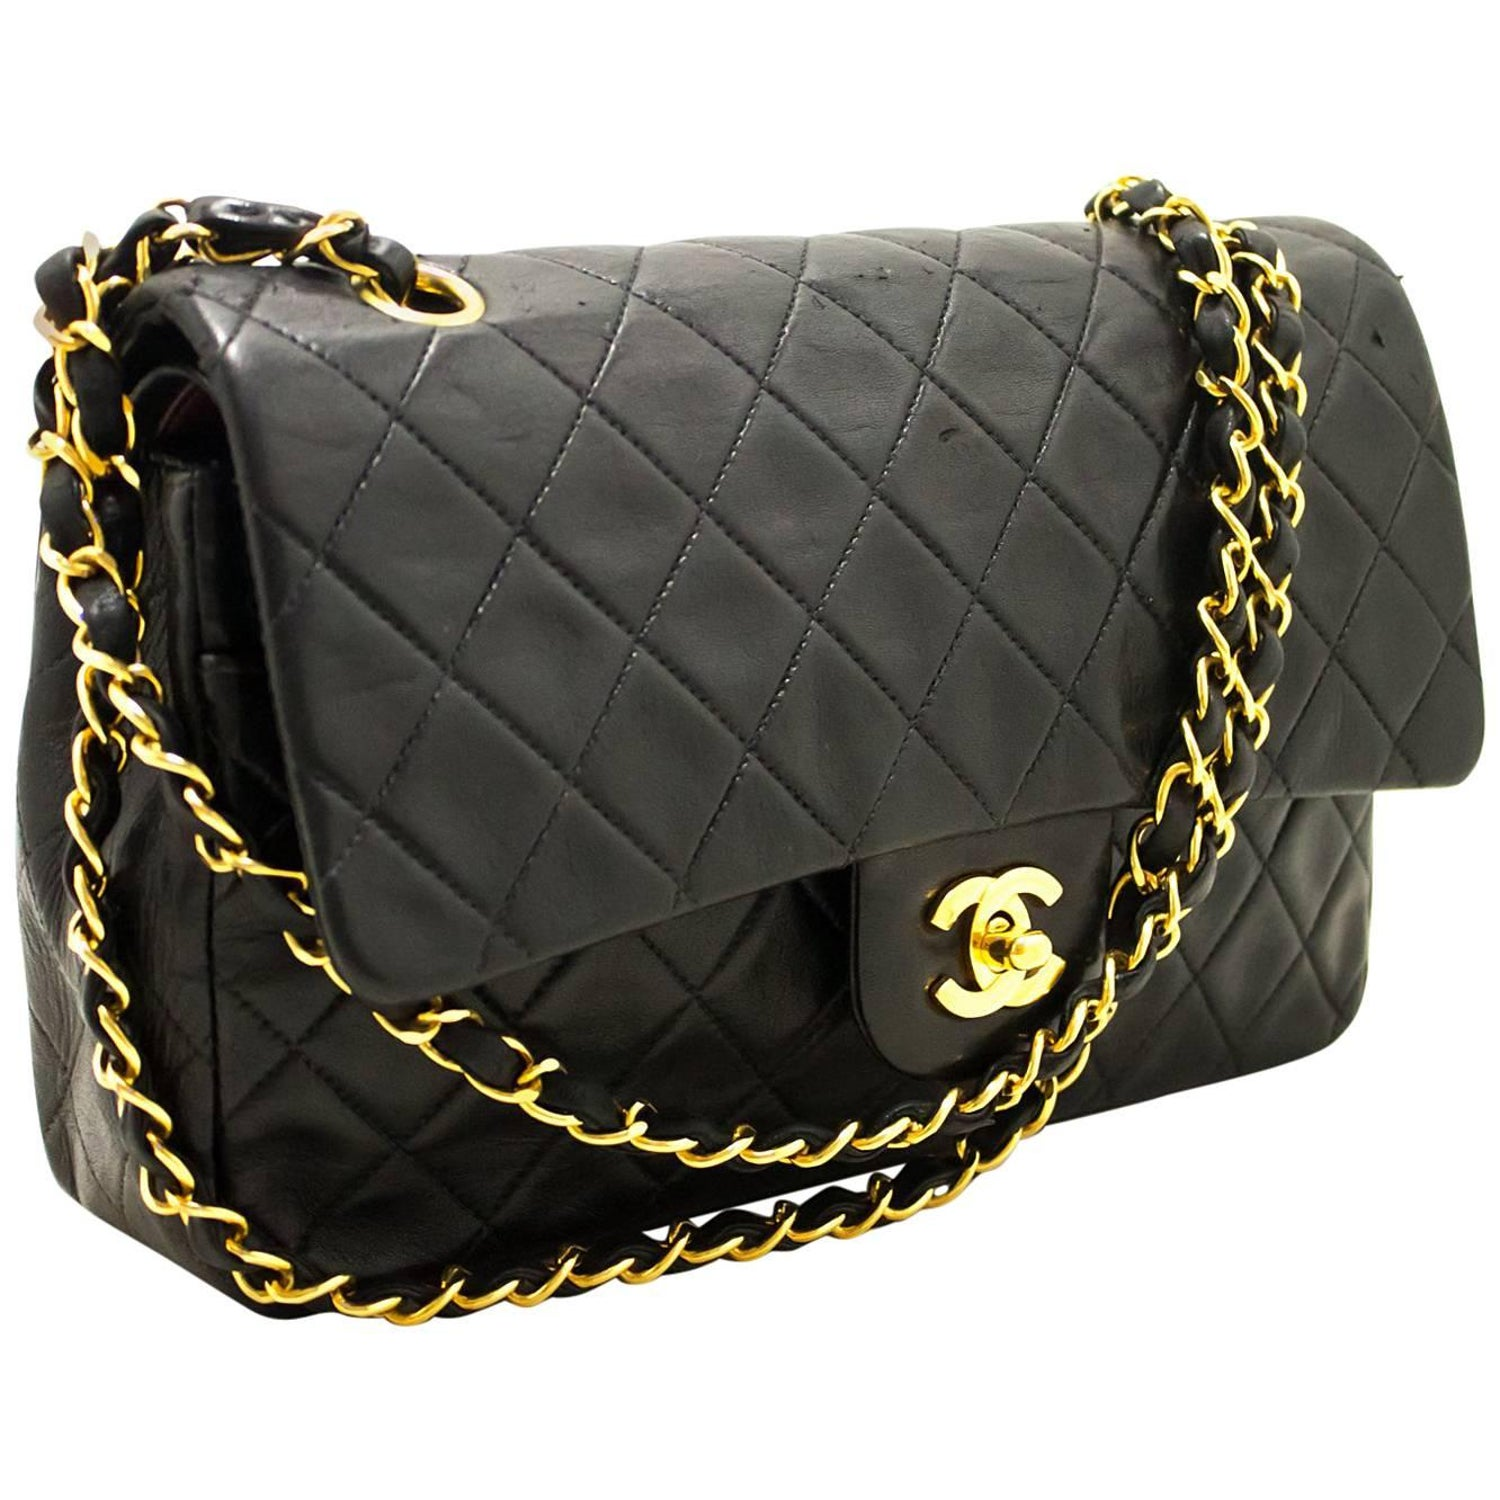 b837027f96f452 Chanel 2.55 Double Flap 10